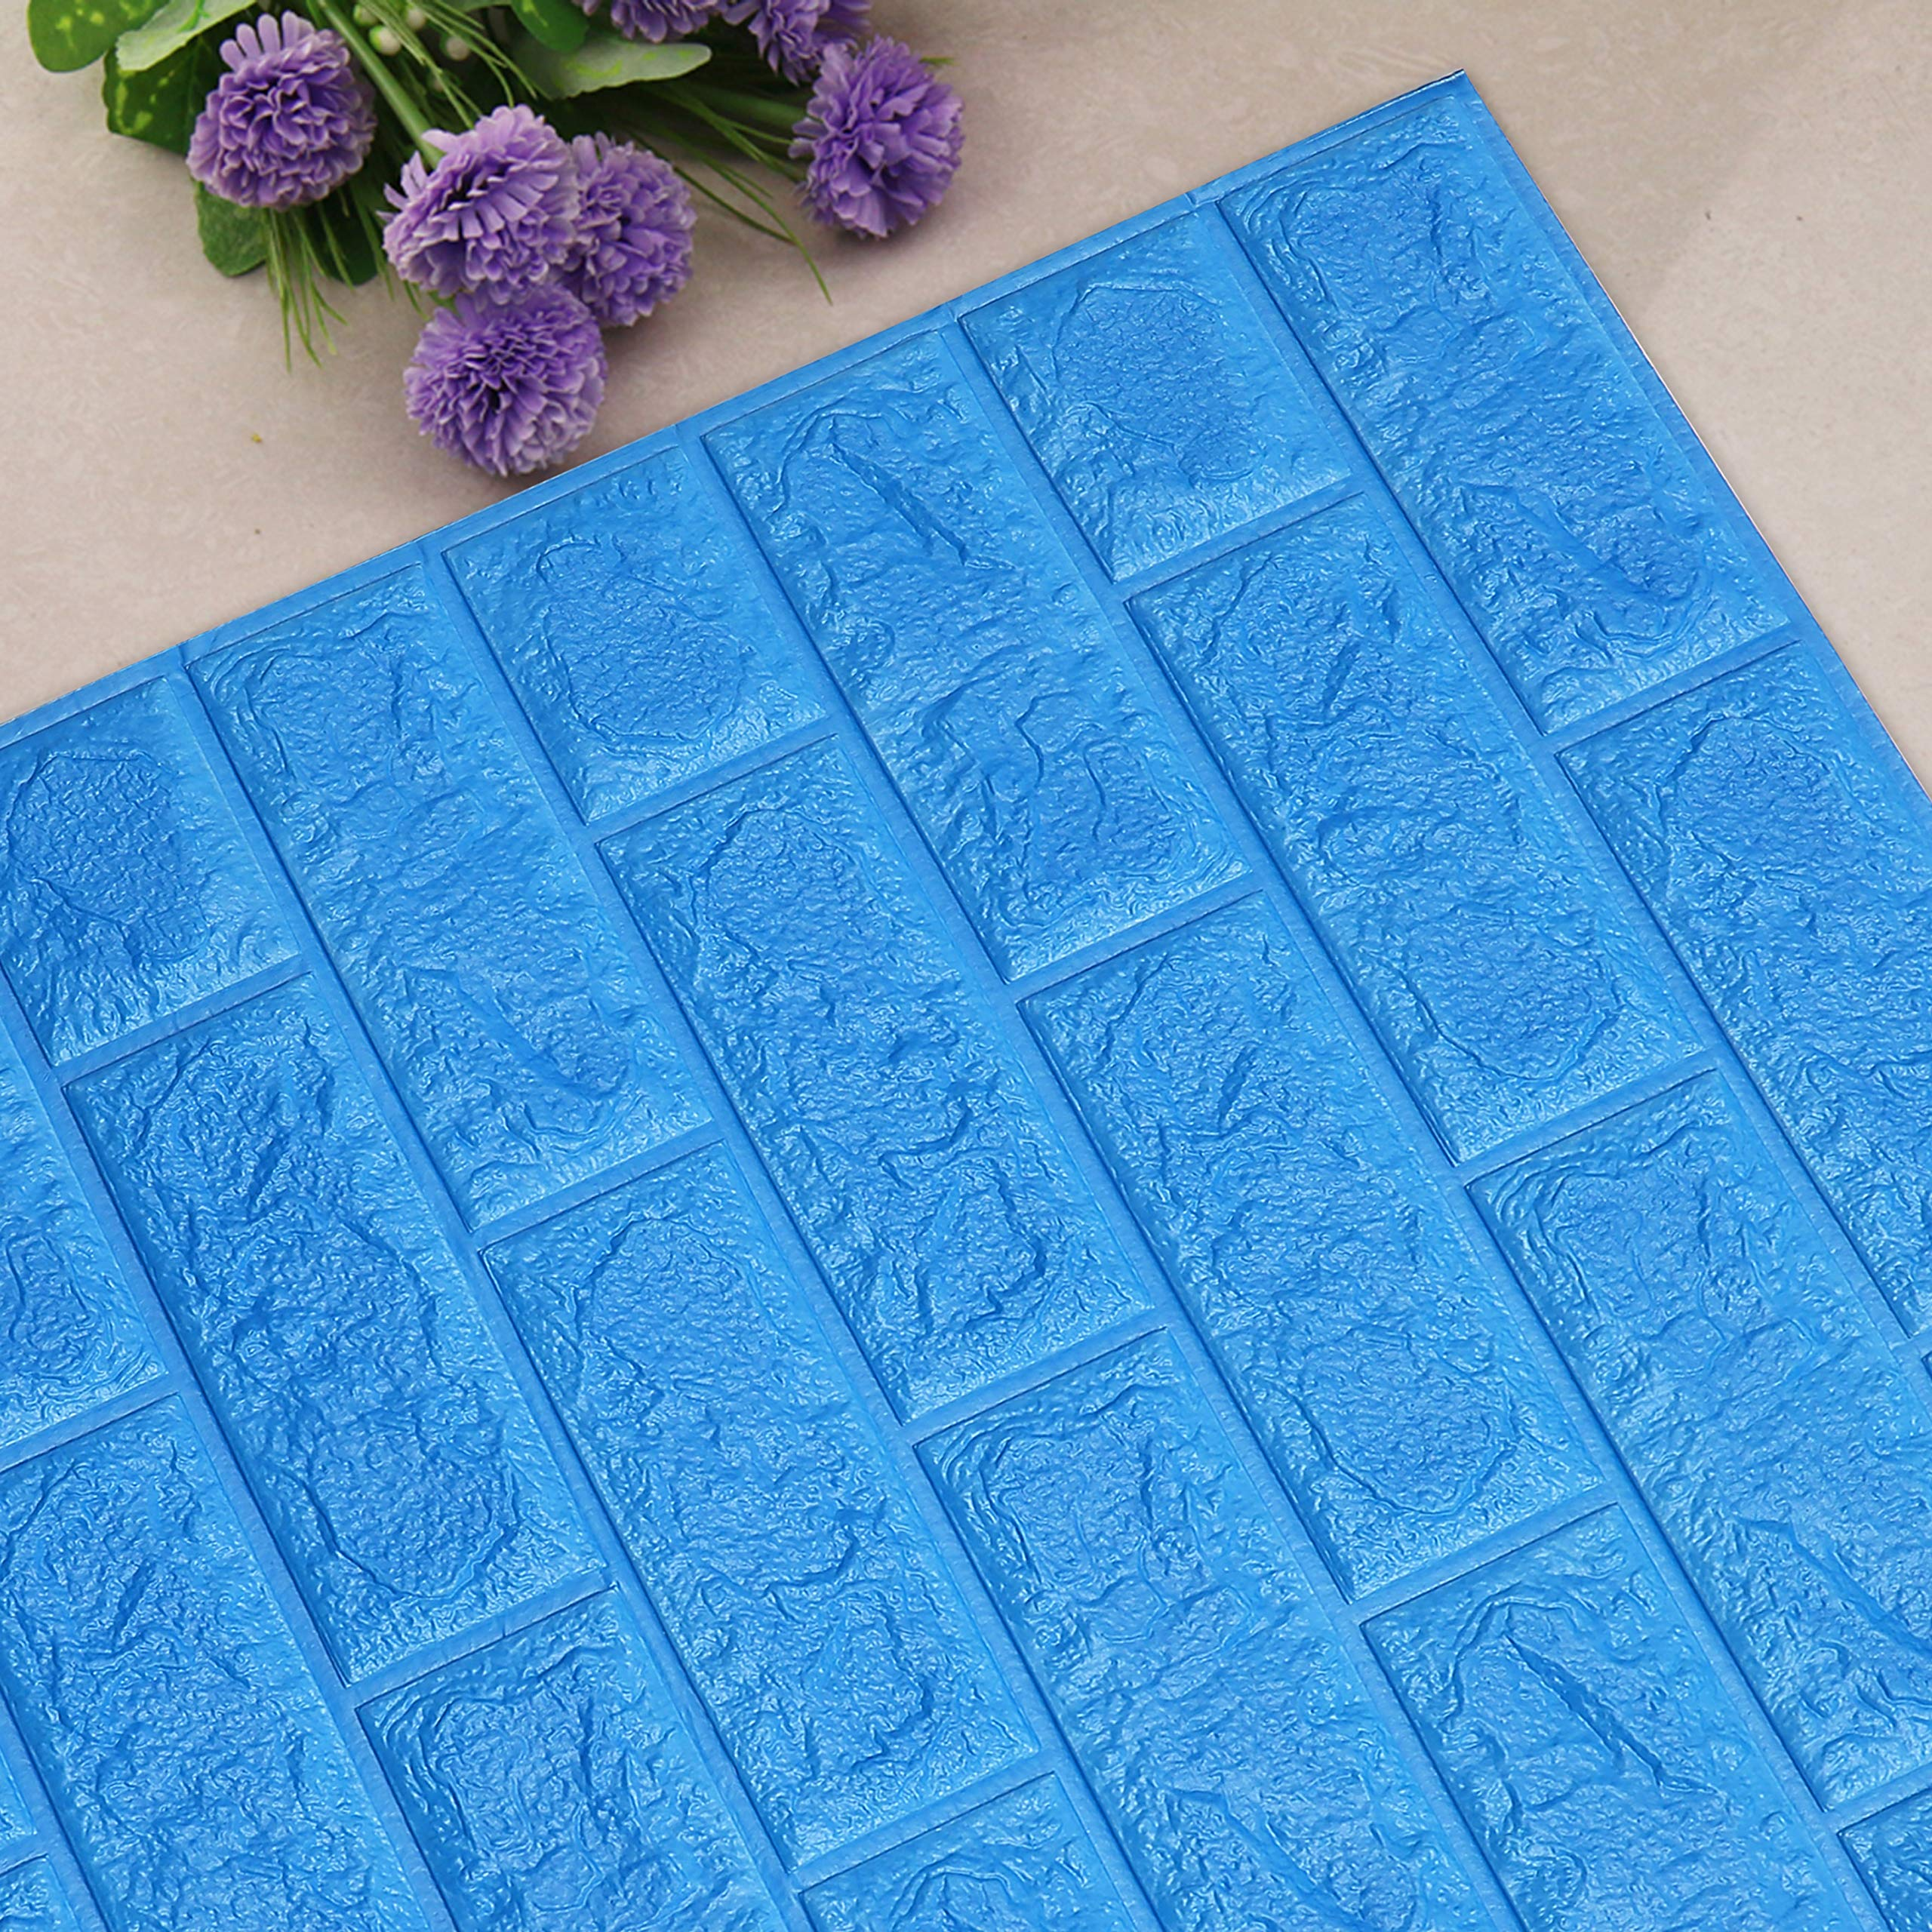 UNICOO - 3D Wall Panels Peel and Stick Self-Adhesive Real Bricks Effect Wall Tiles for Kids Room Bathroom Living Room TV Walls Sofa Background Wall Decoration. 116sq ft 20 Packs (Blue)